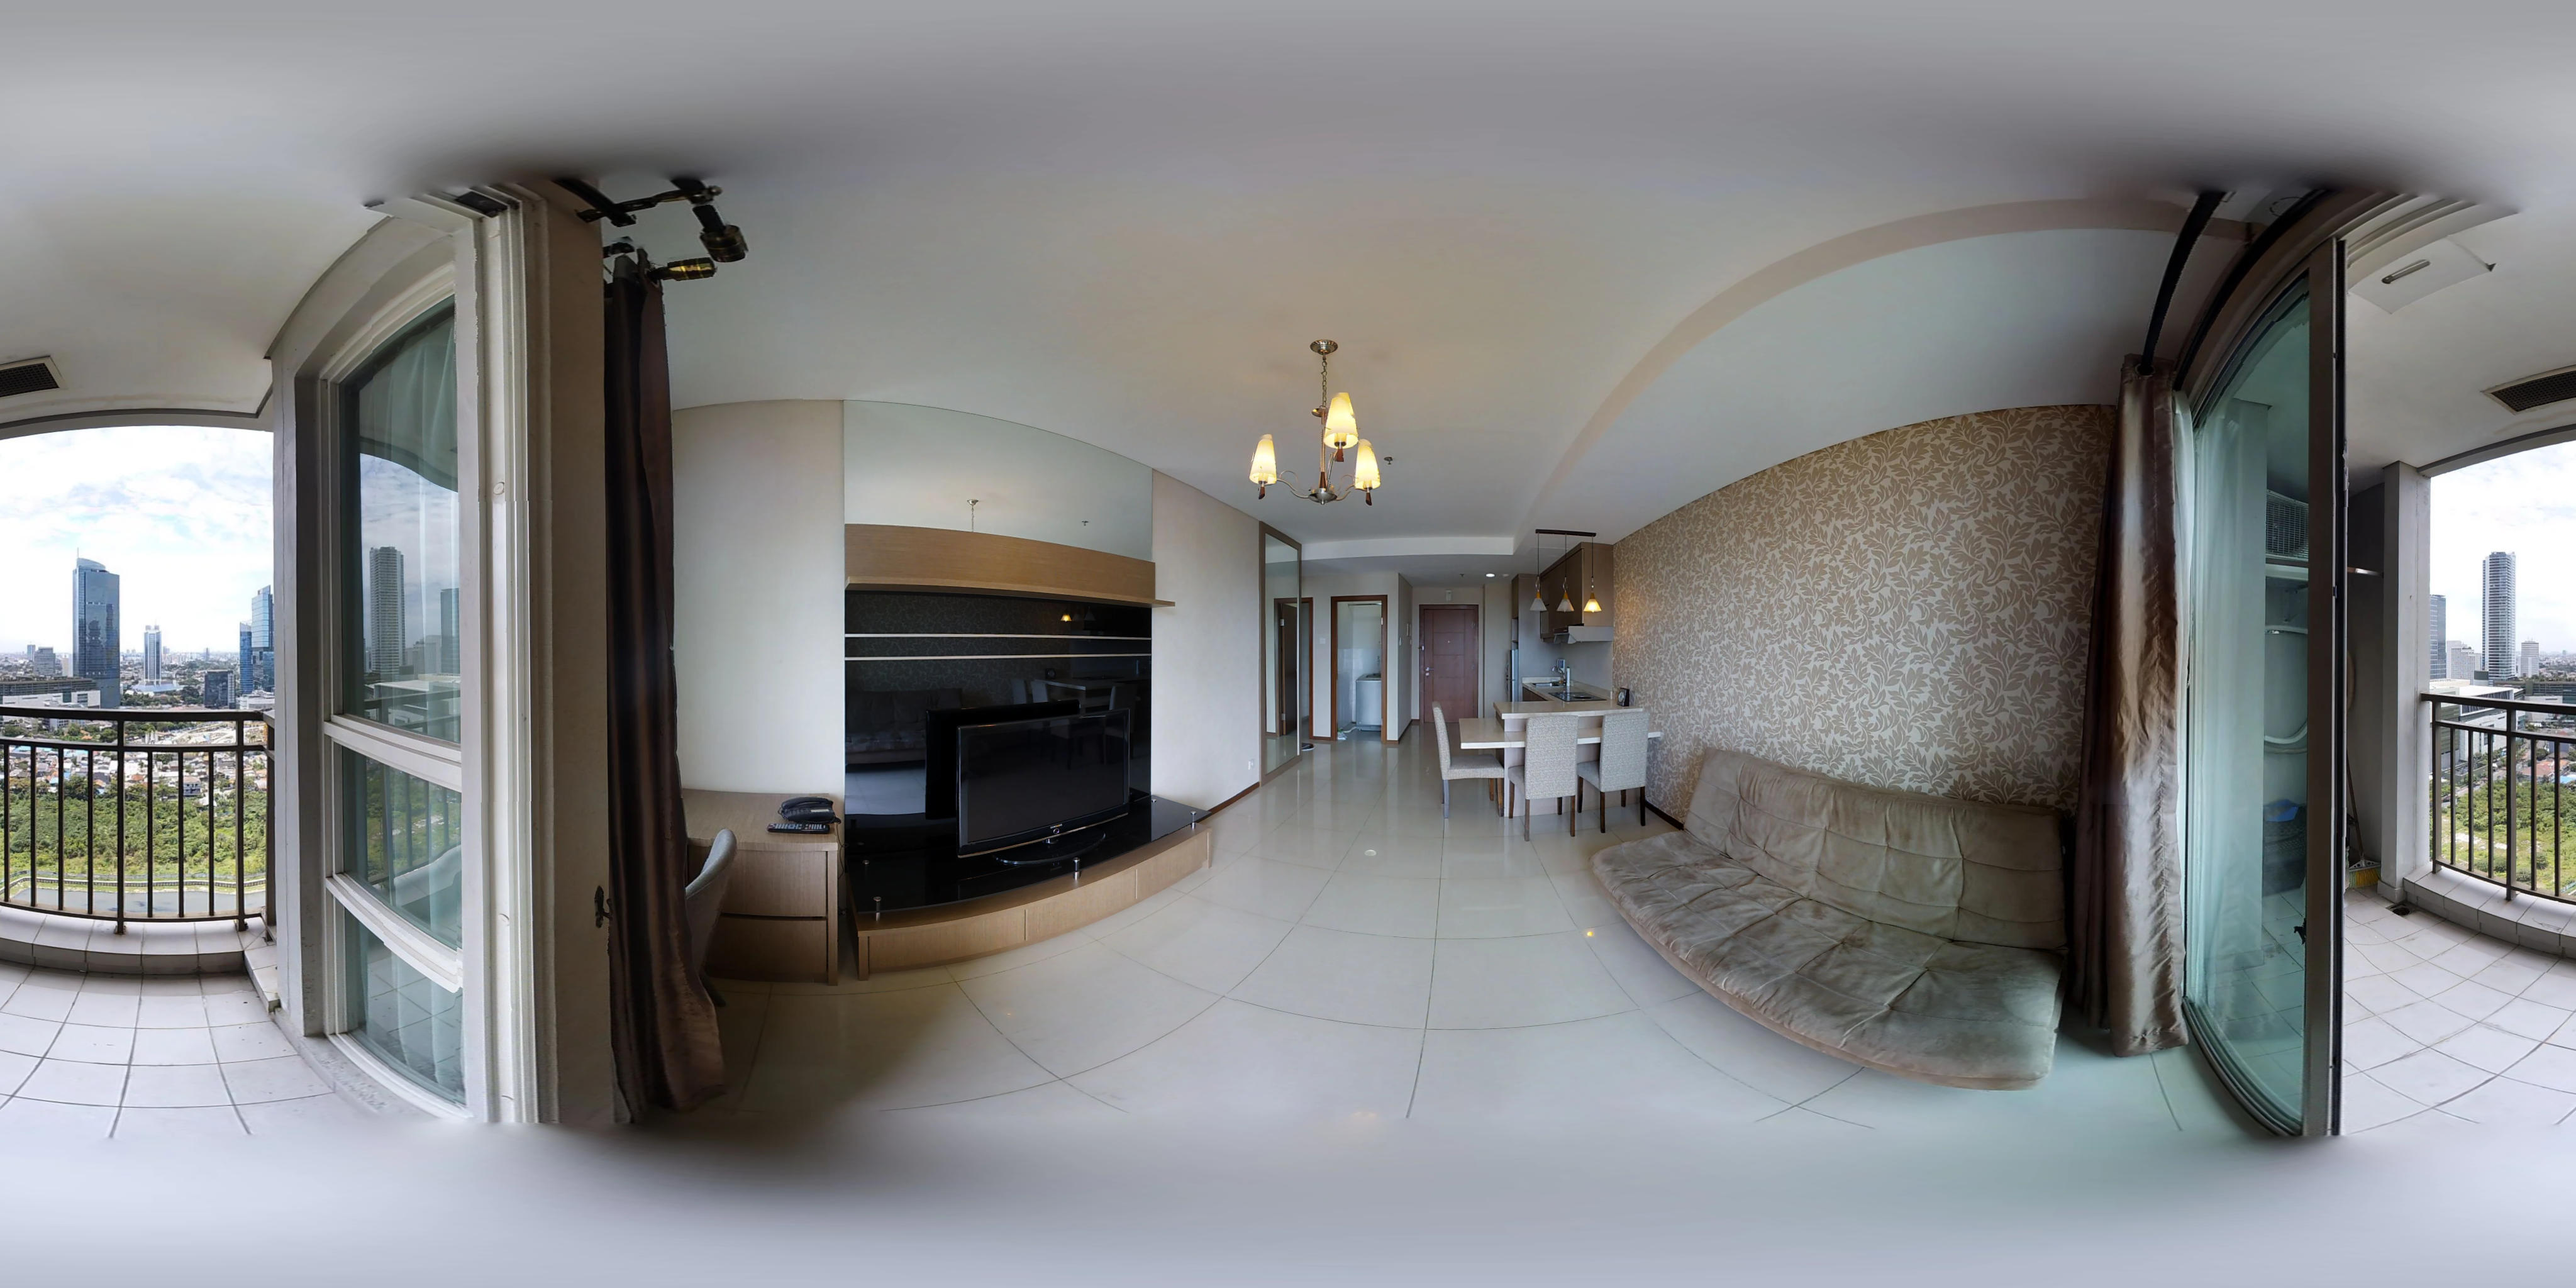 for rent Thamrin Residences - 2 bedroom with extra room and double view